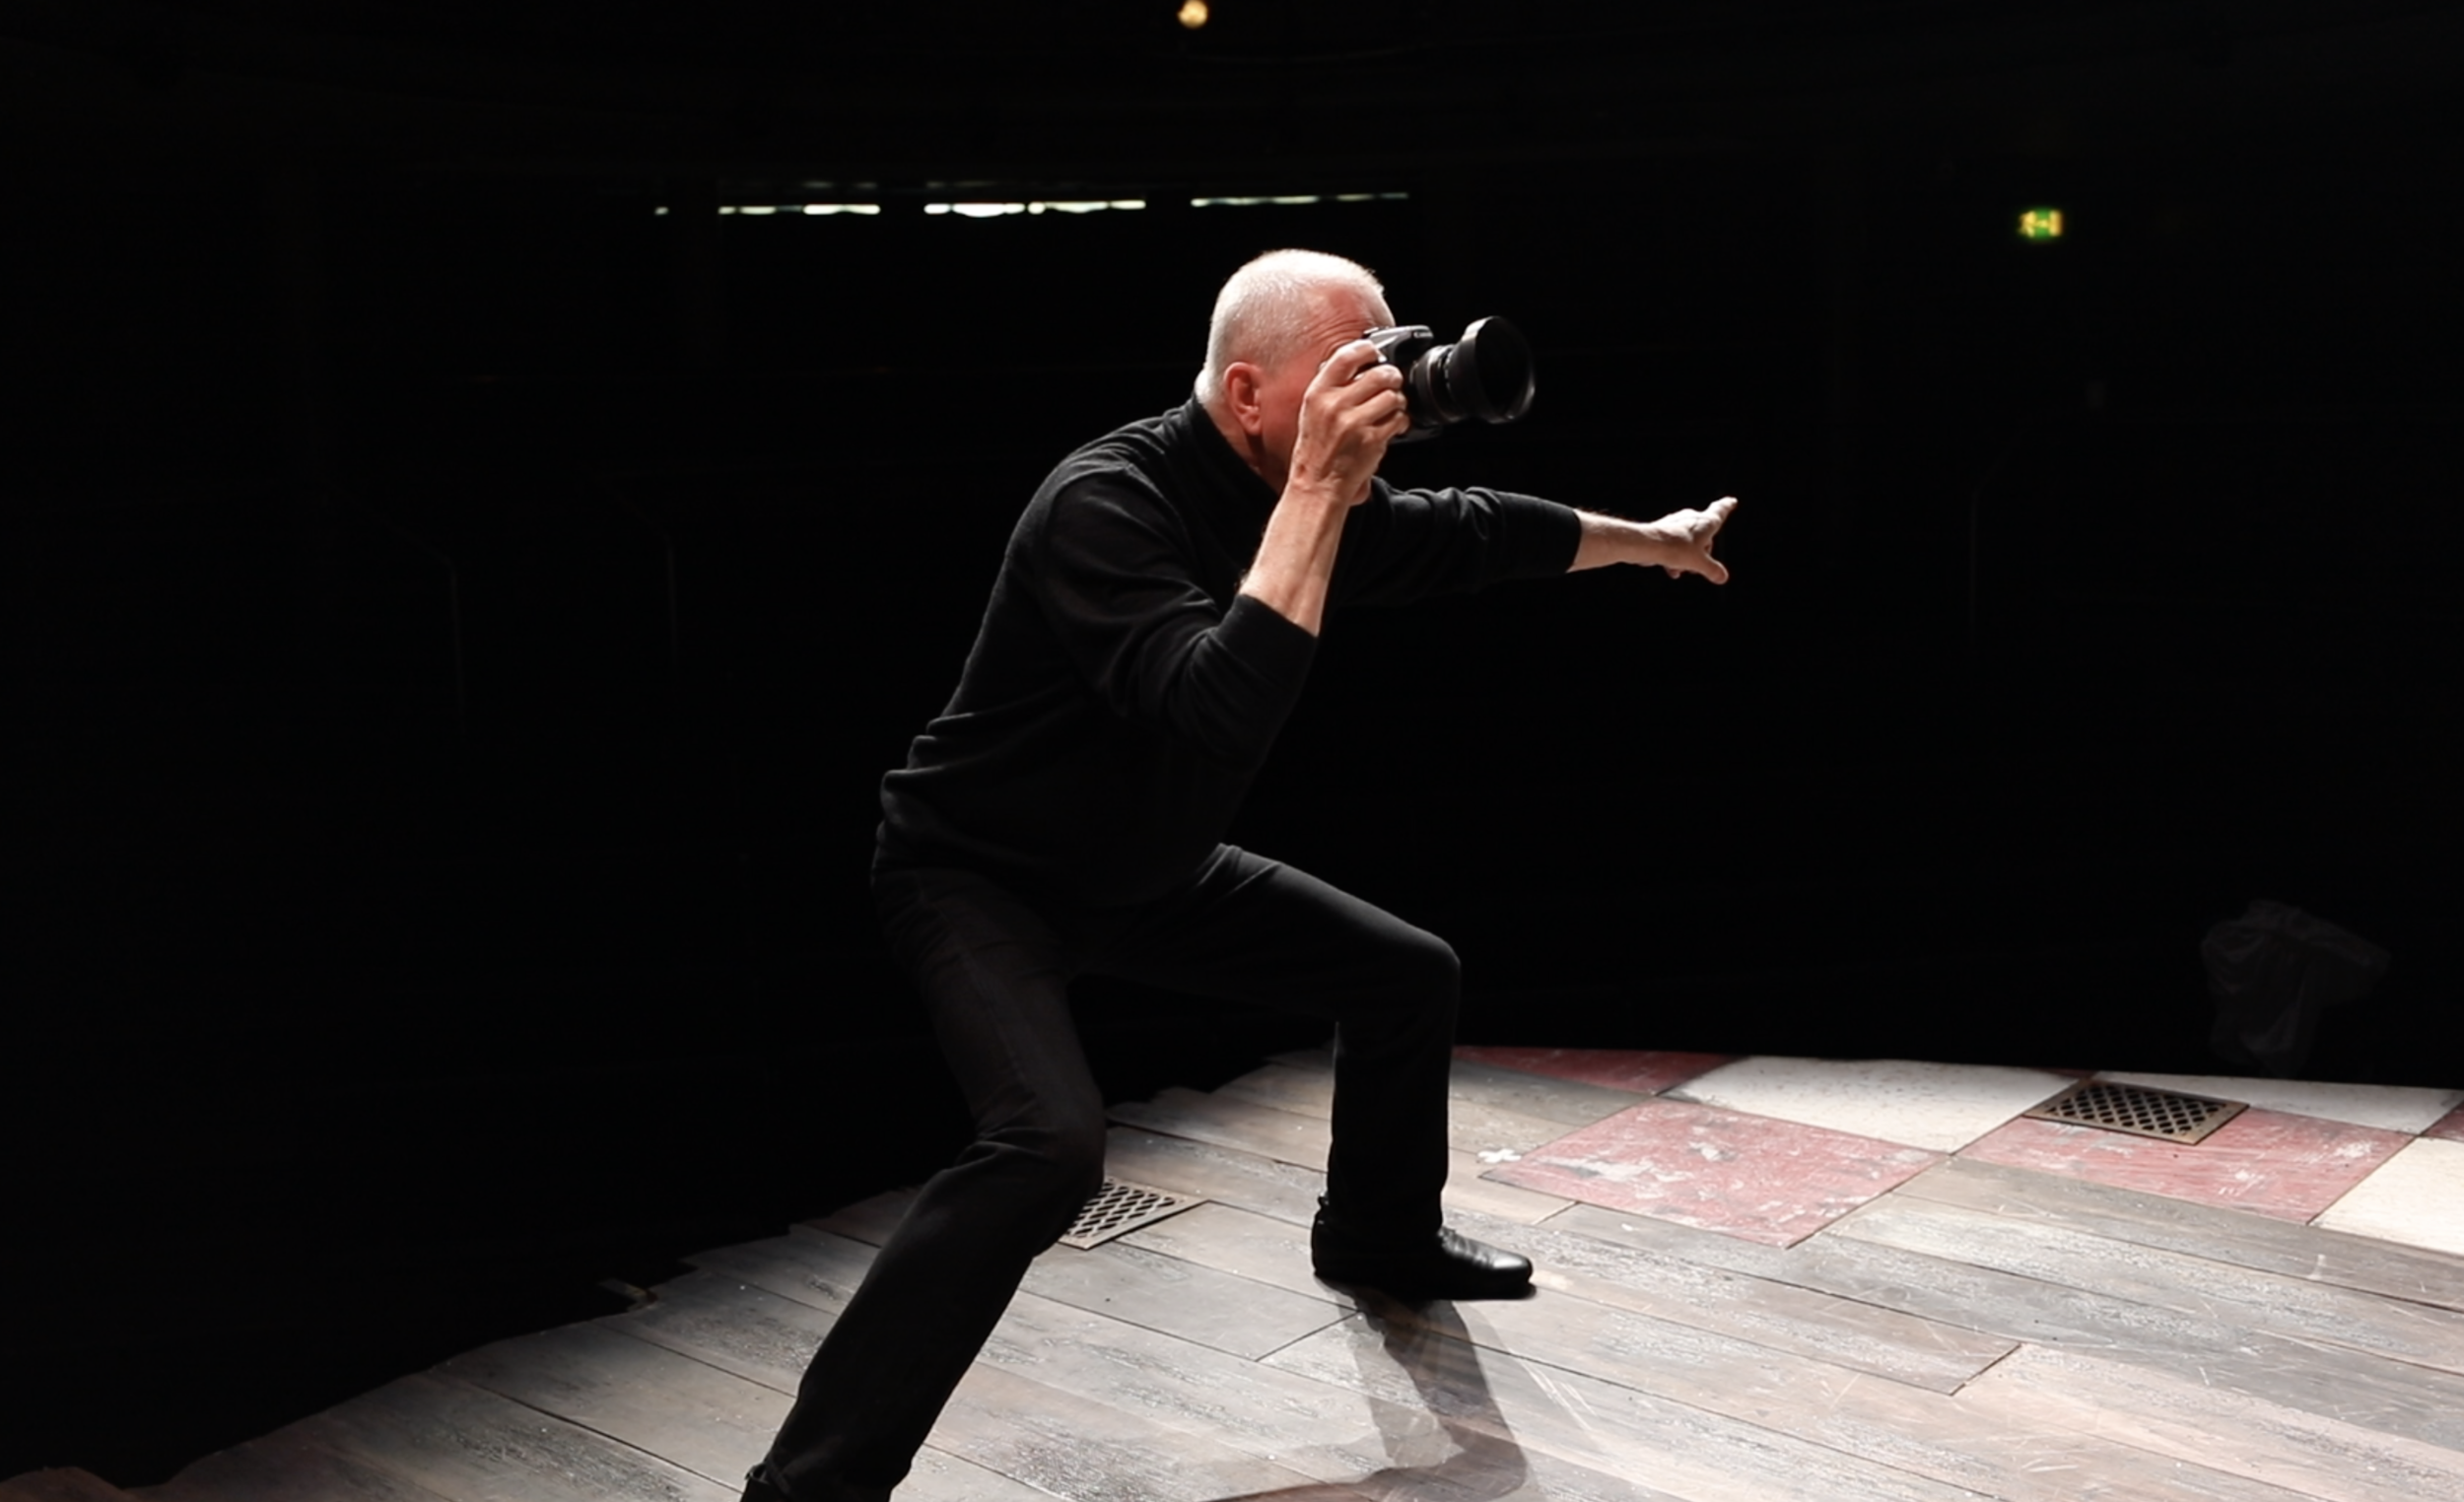 photo: Max Lutoslawski - taken on stage at the Royal Academy of Dramatic Art (RADA) in London